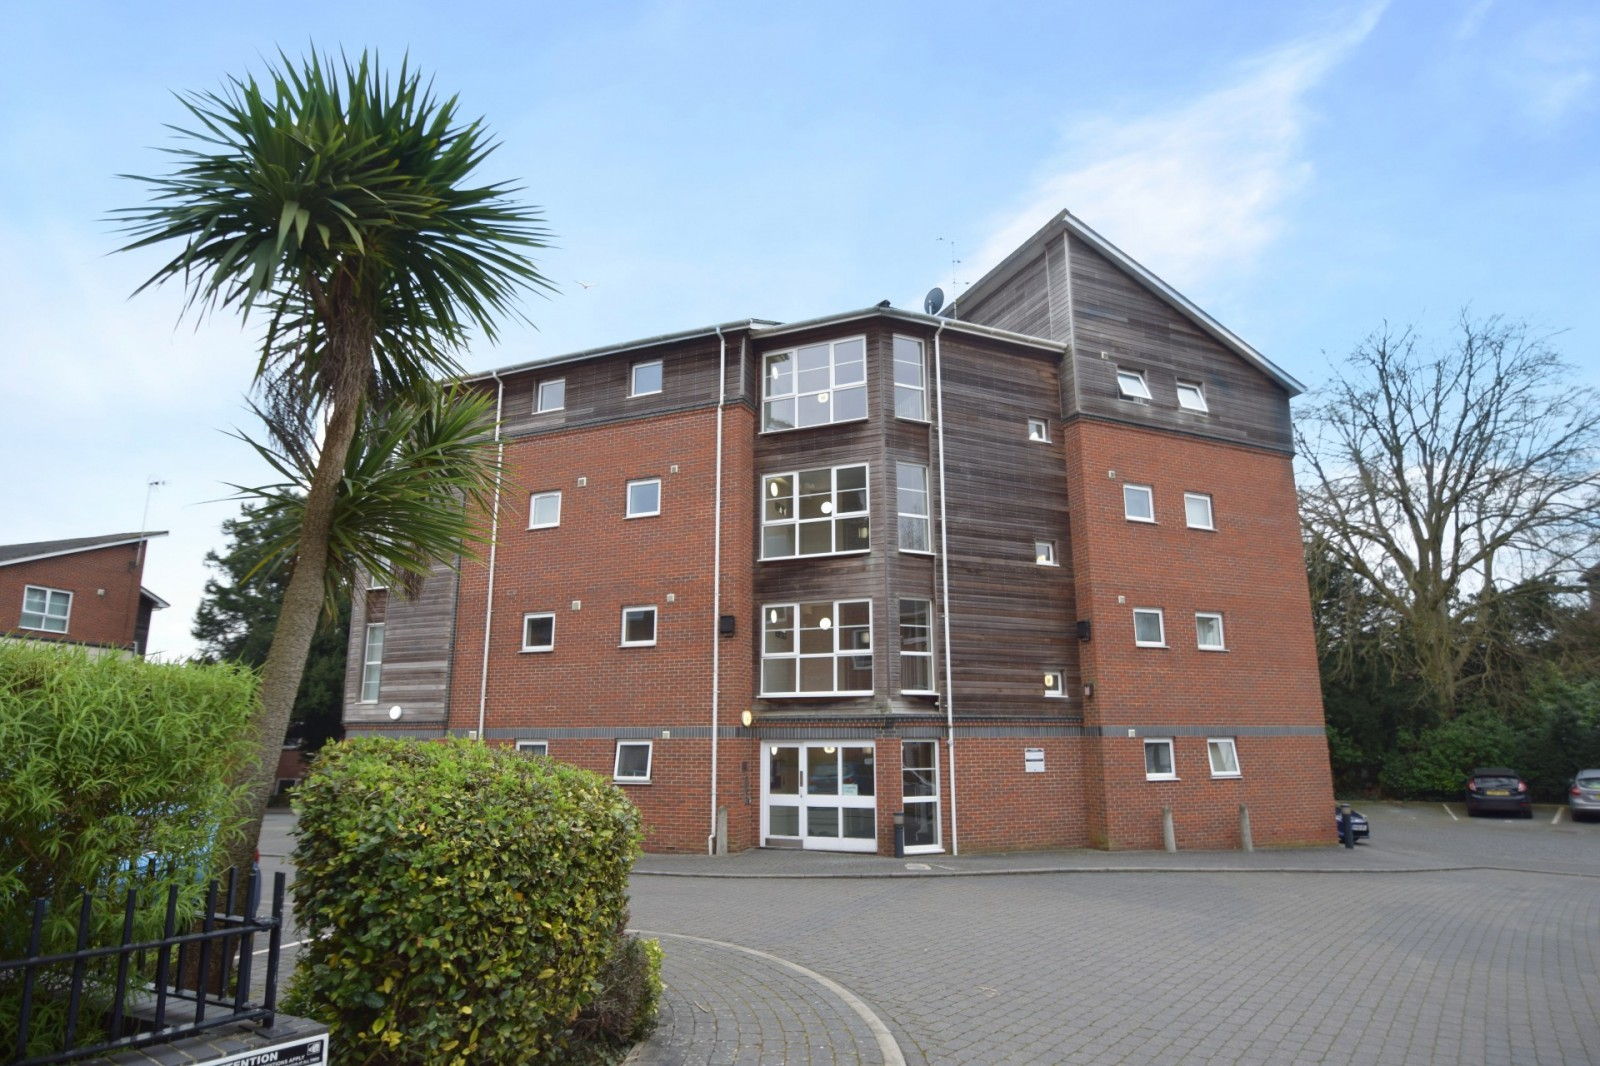 Flat 8 Sycamore House, Athelstan Road, Winchester SO23 7GA